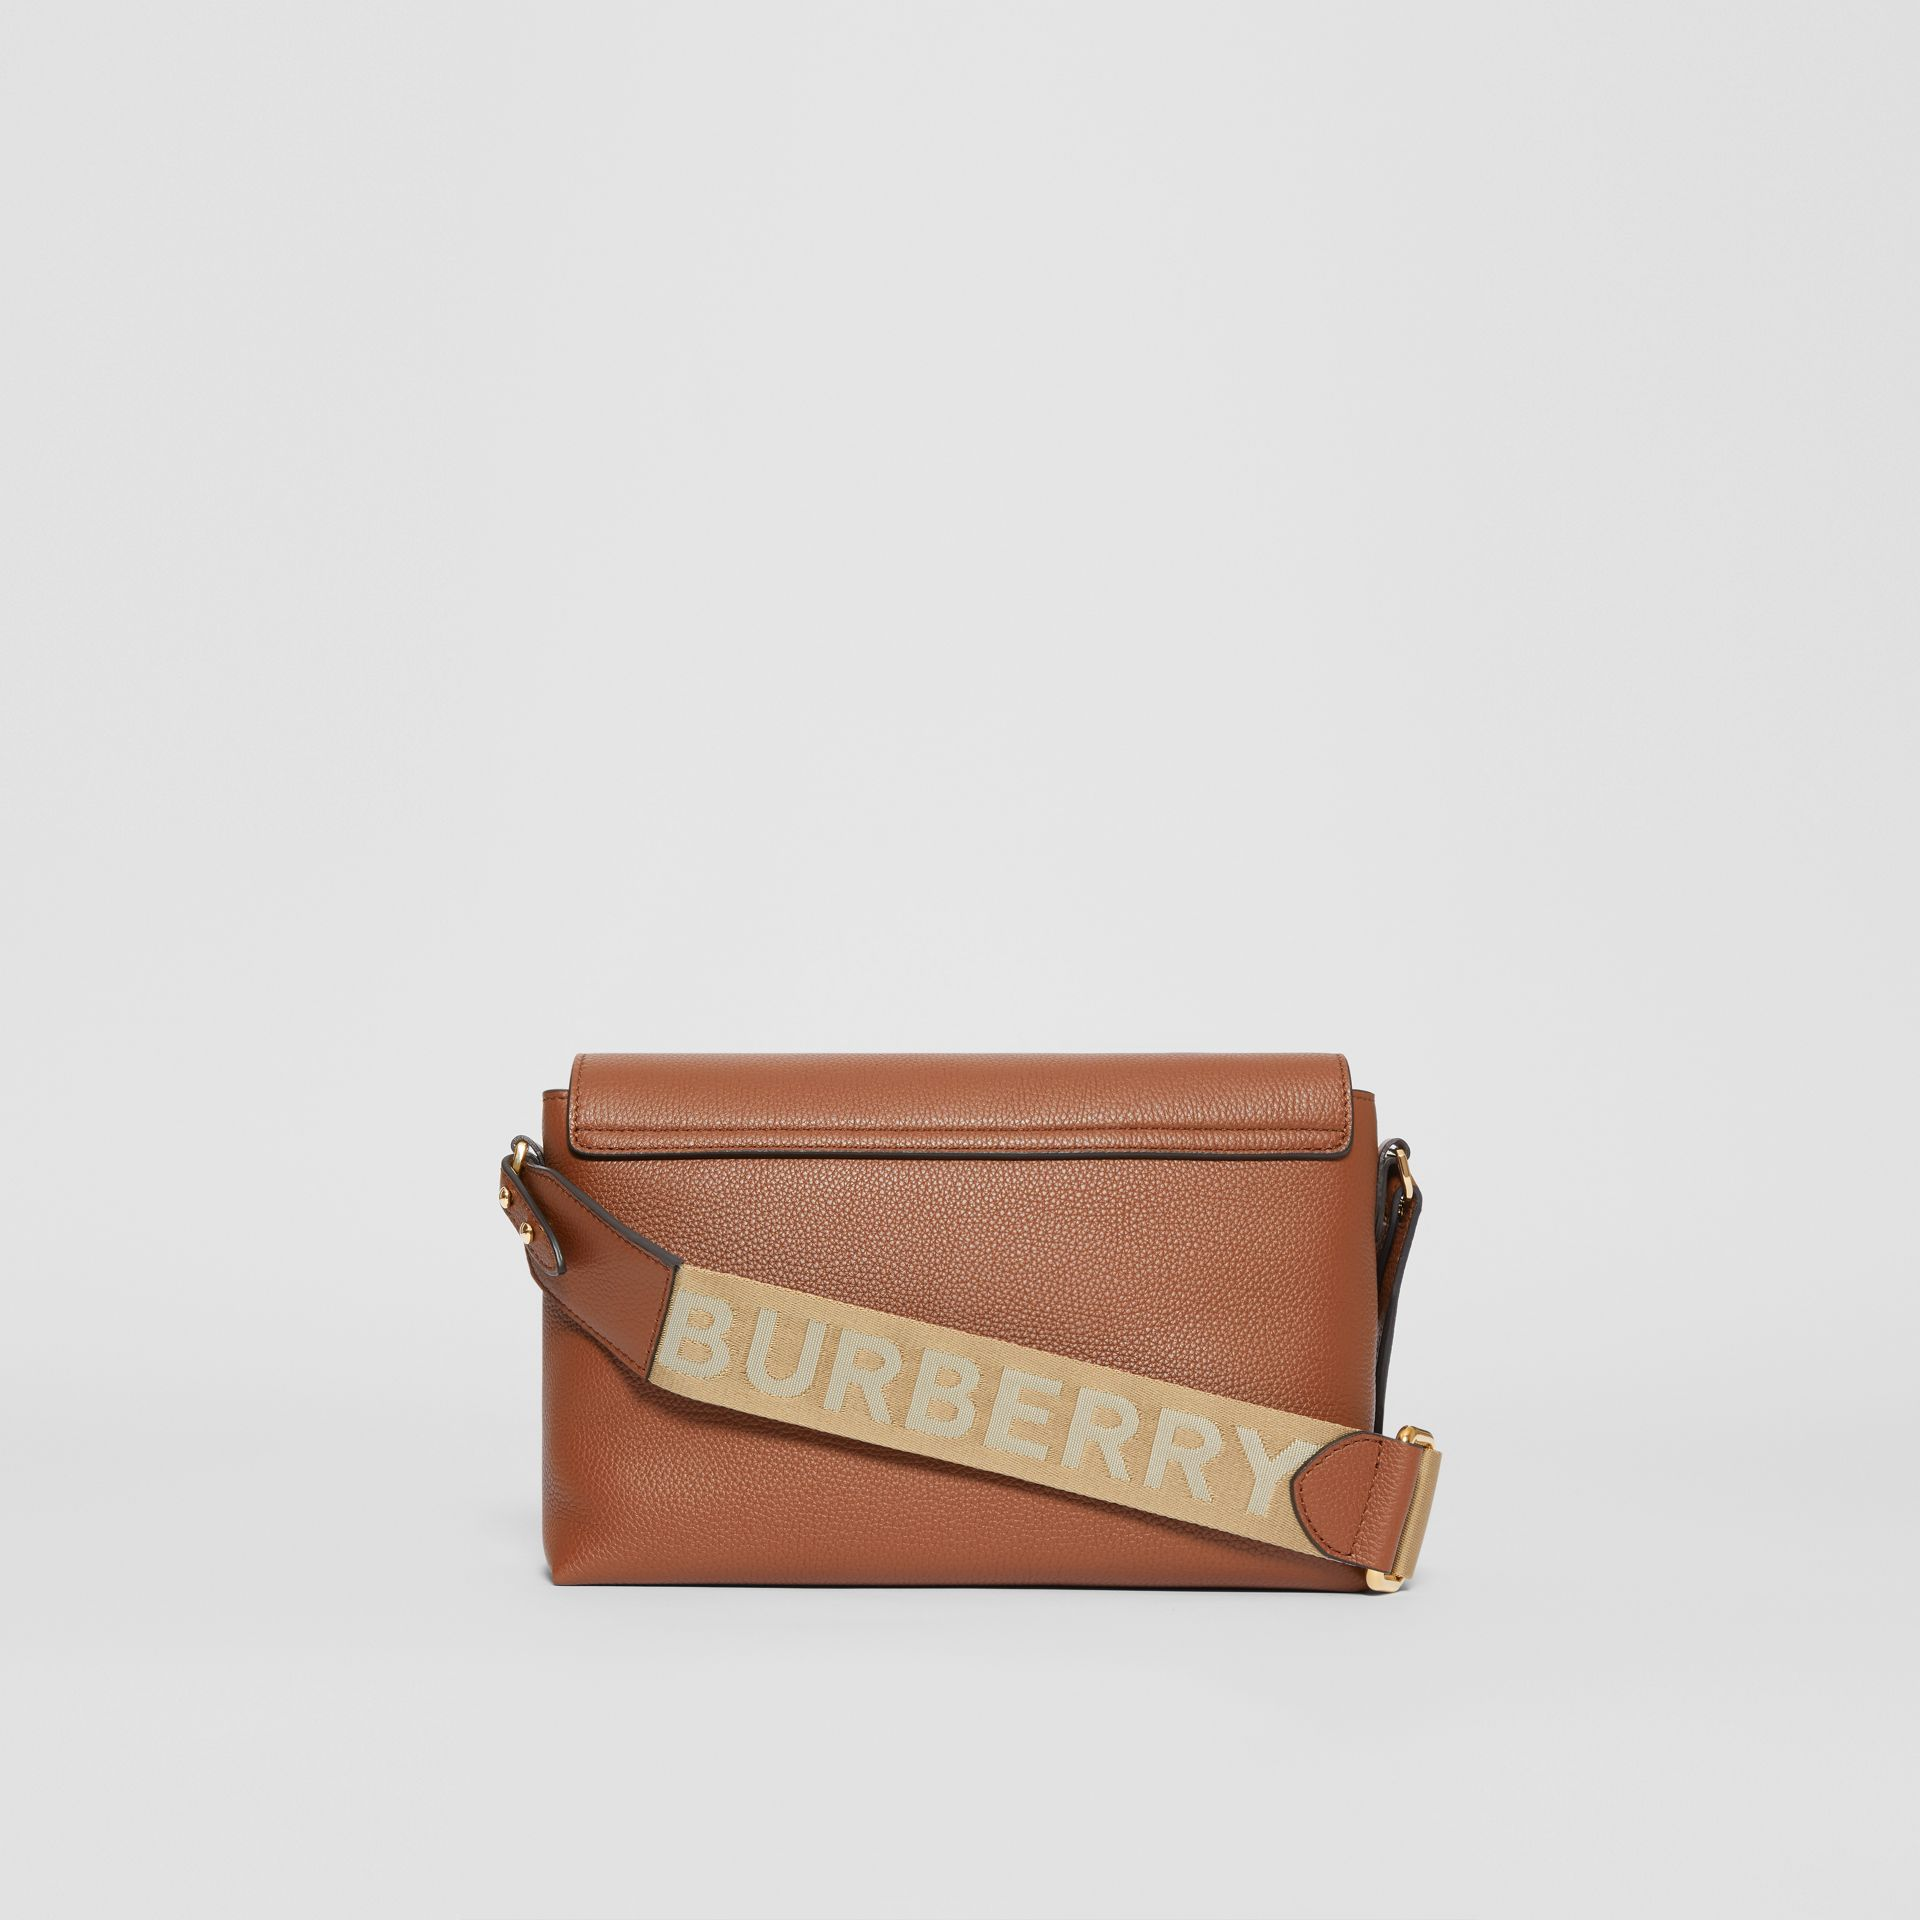 Leather and Vintage Check Note Crossbody Bag in Tan - Women | Burberry United Kingdom - gallery image 7